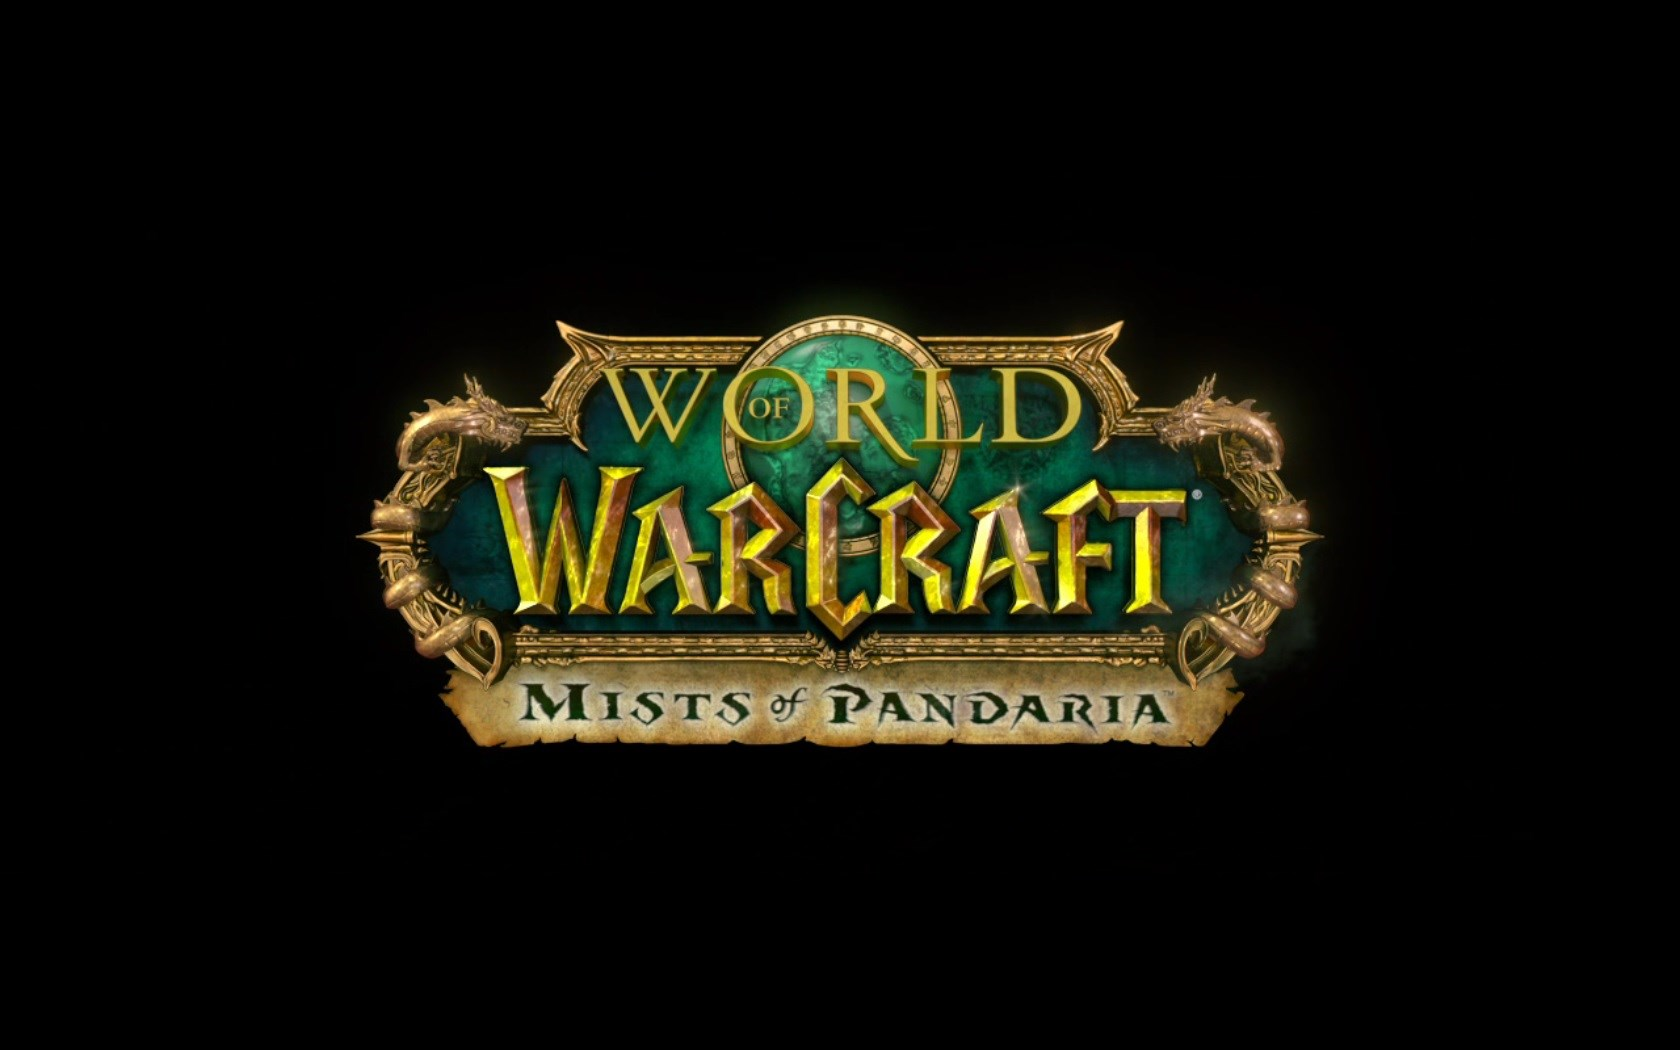 World of Warcraft Mists of Pandaria Screenshot Wallpaper Title Screen